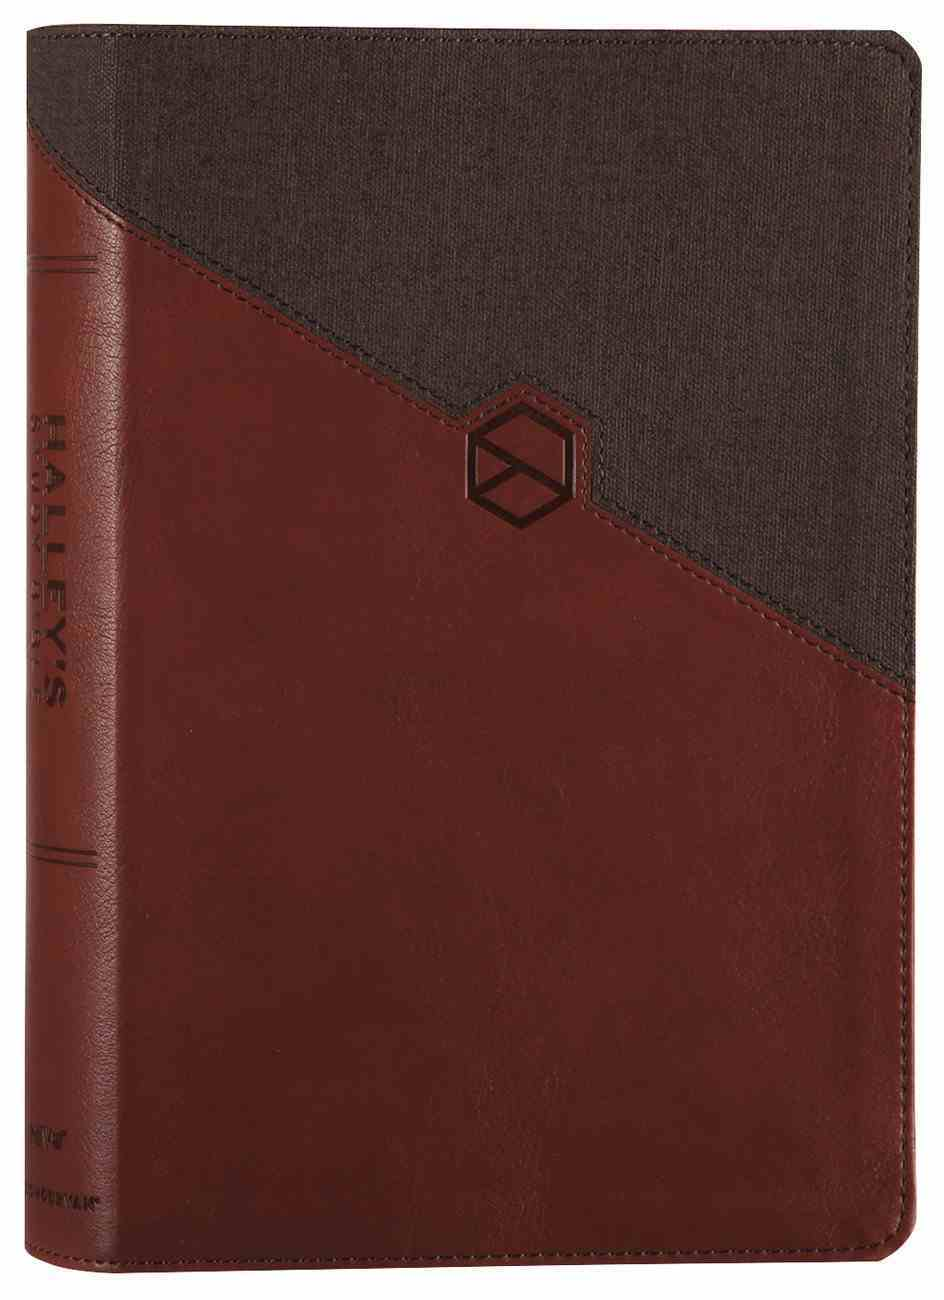 NIV Halley's Study Bible Brown (Red Letter Edition) Premium Imitation Leather